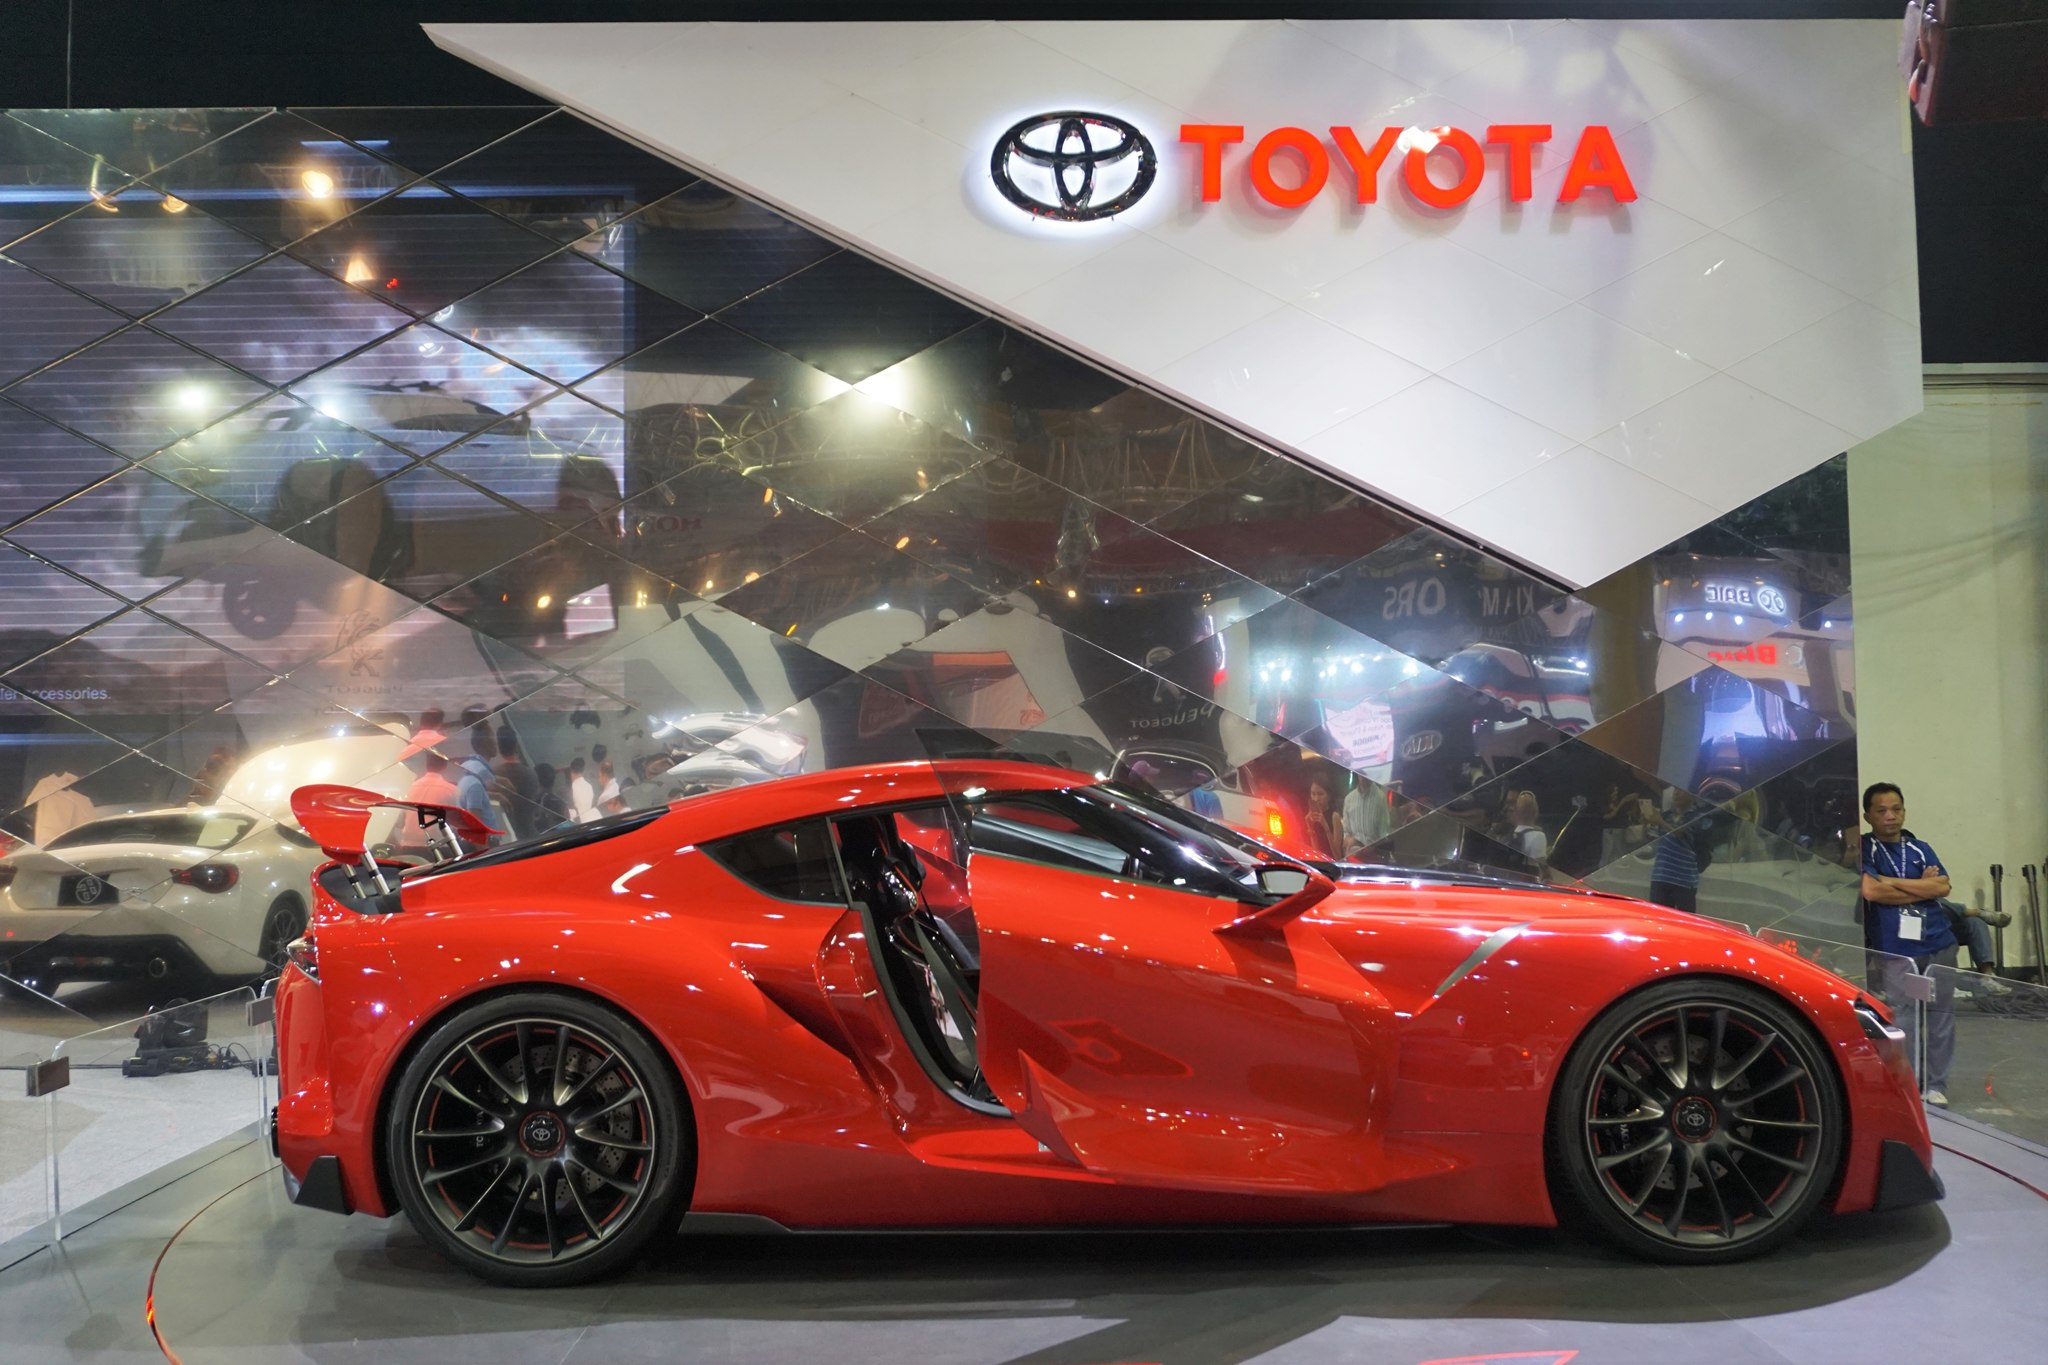 toyota-ft-1-concept-car-at-the-philippine-international-motor-show-2